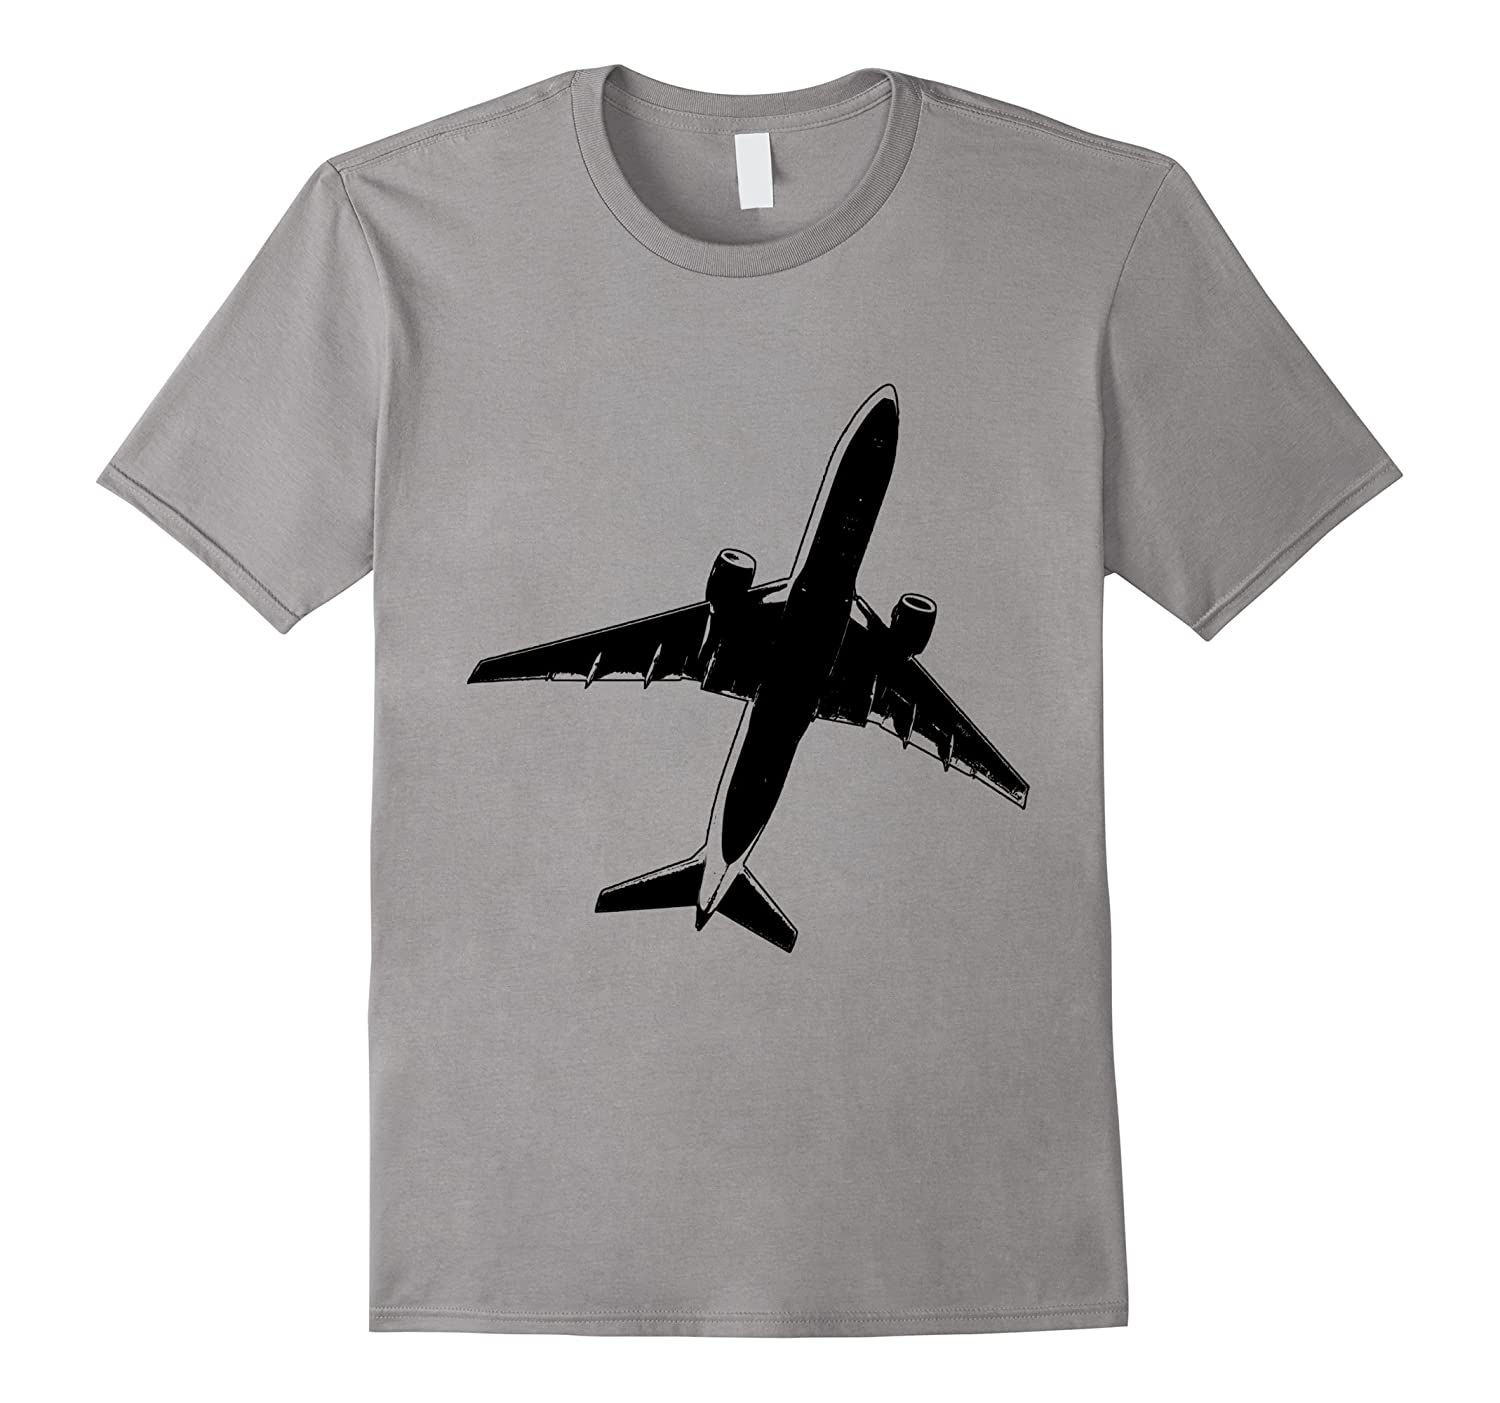 Flying Airplane t-shirt Plane Jet Airliner Silhouette-T-Shirt